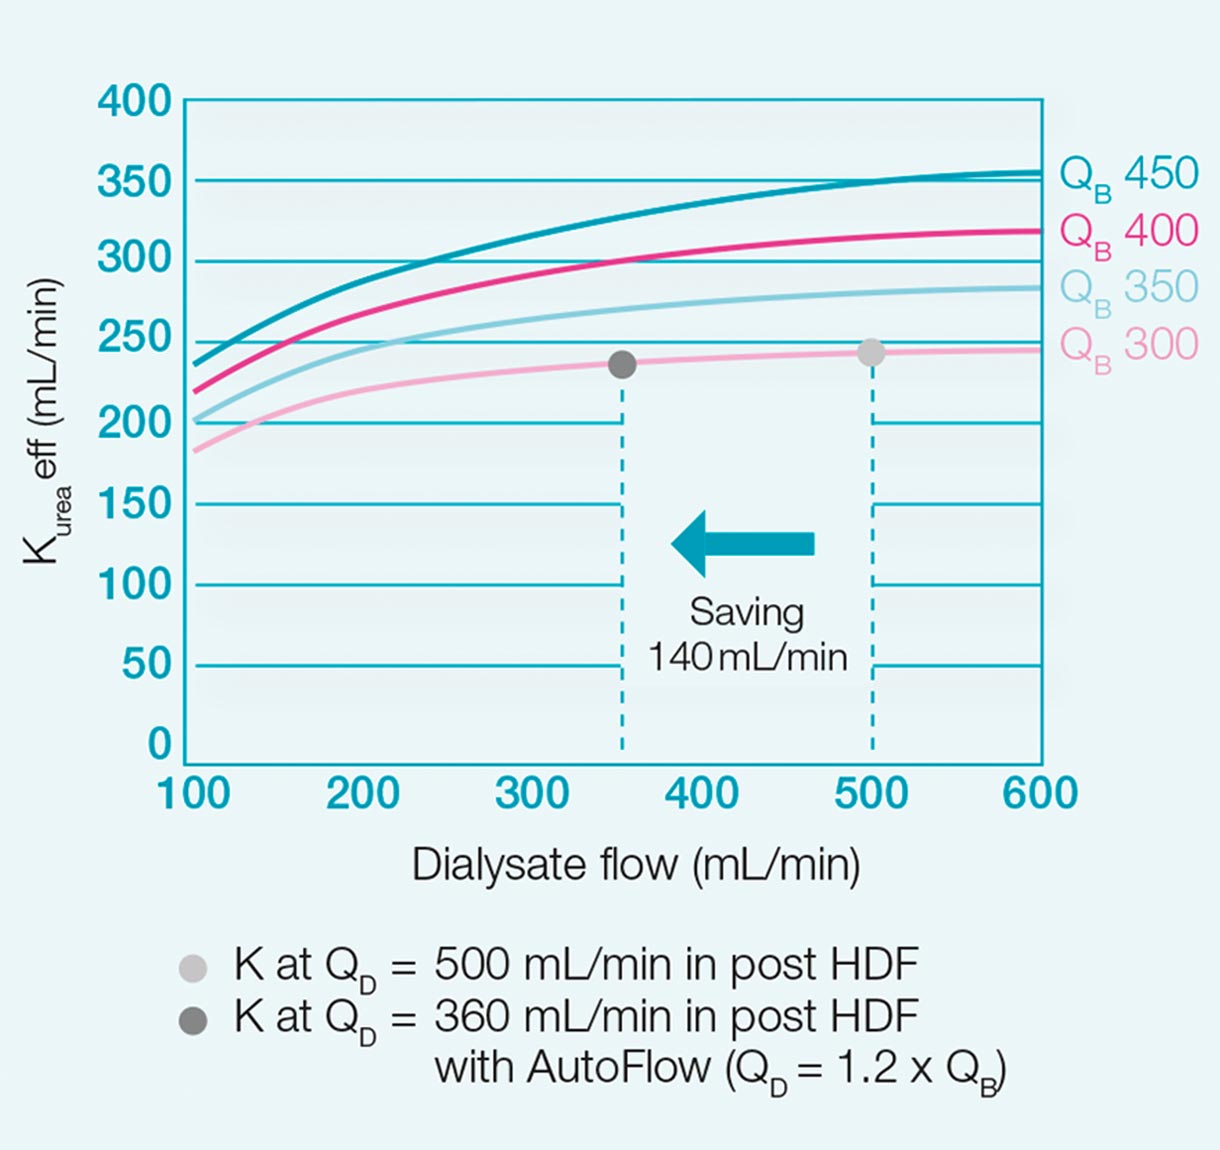 Diagram of dialysate flow